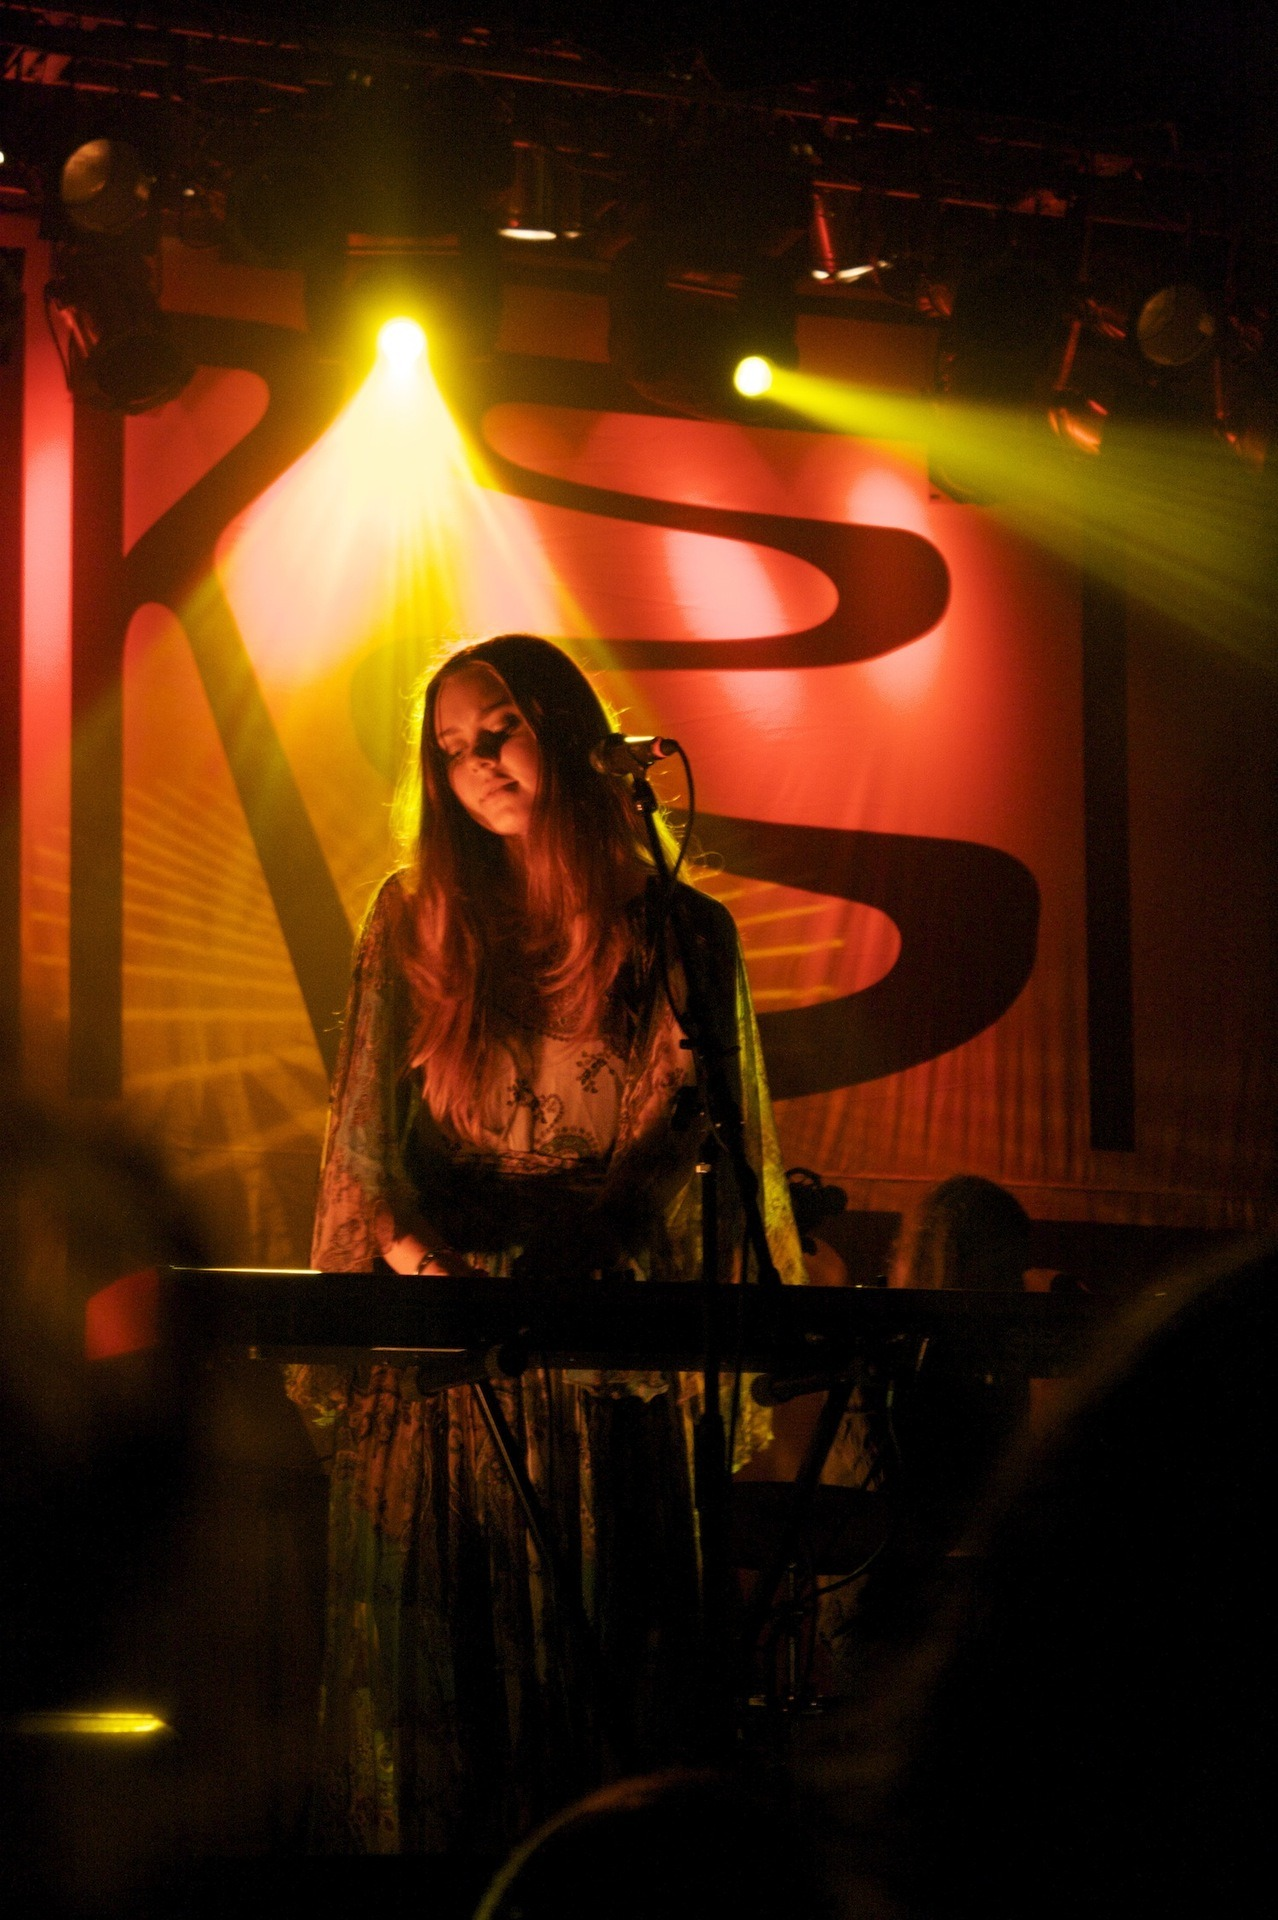 The Swedish folk duo First Aid Kit played at the Orange Peel Oct. 3. First Aid Kit, which is made up of sisters Klara and Johanna, flung their long hair in every direction Wednesday night as they sang harmonies while playing guitar and keyboard. For their song Ghost Town, the sisters chose to perform without microphones, and asked the crowd to sing along. To listen to their new CD, the Lion's Roar, which they released earlier this year, visit their website. - Micah Wilkins